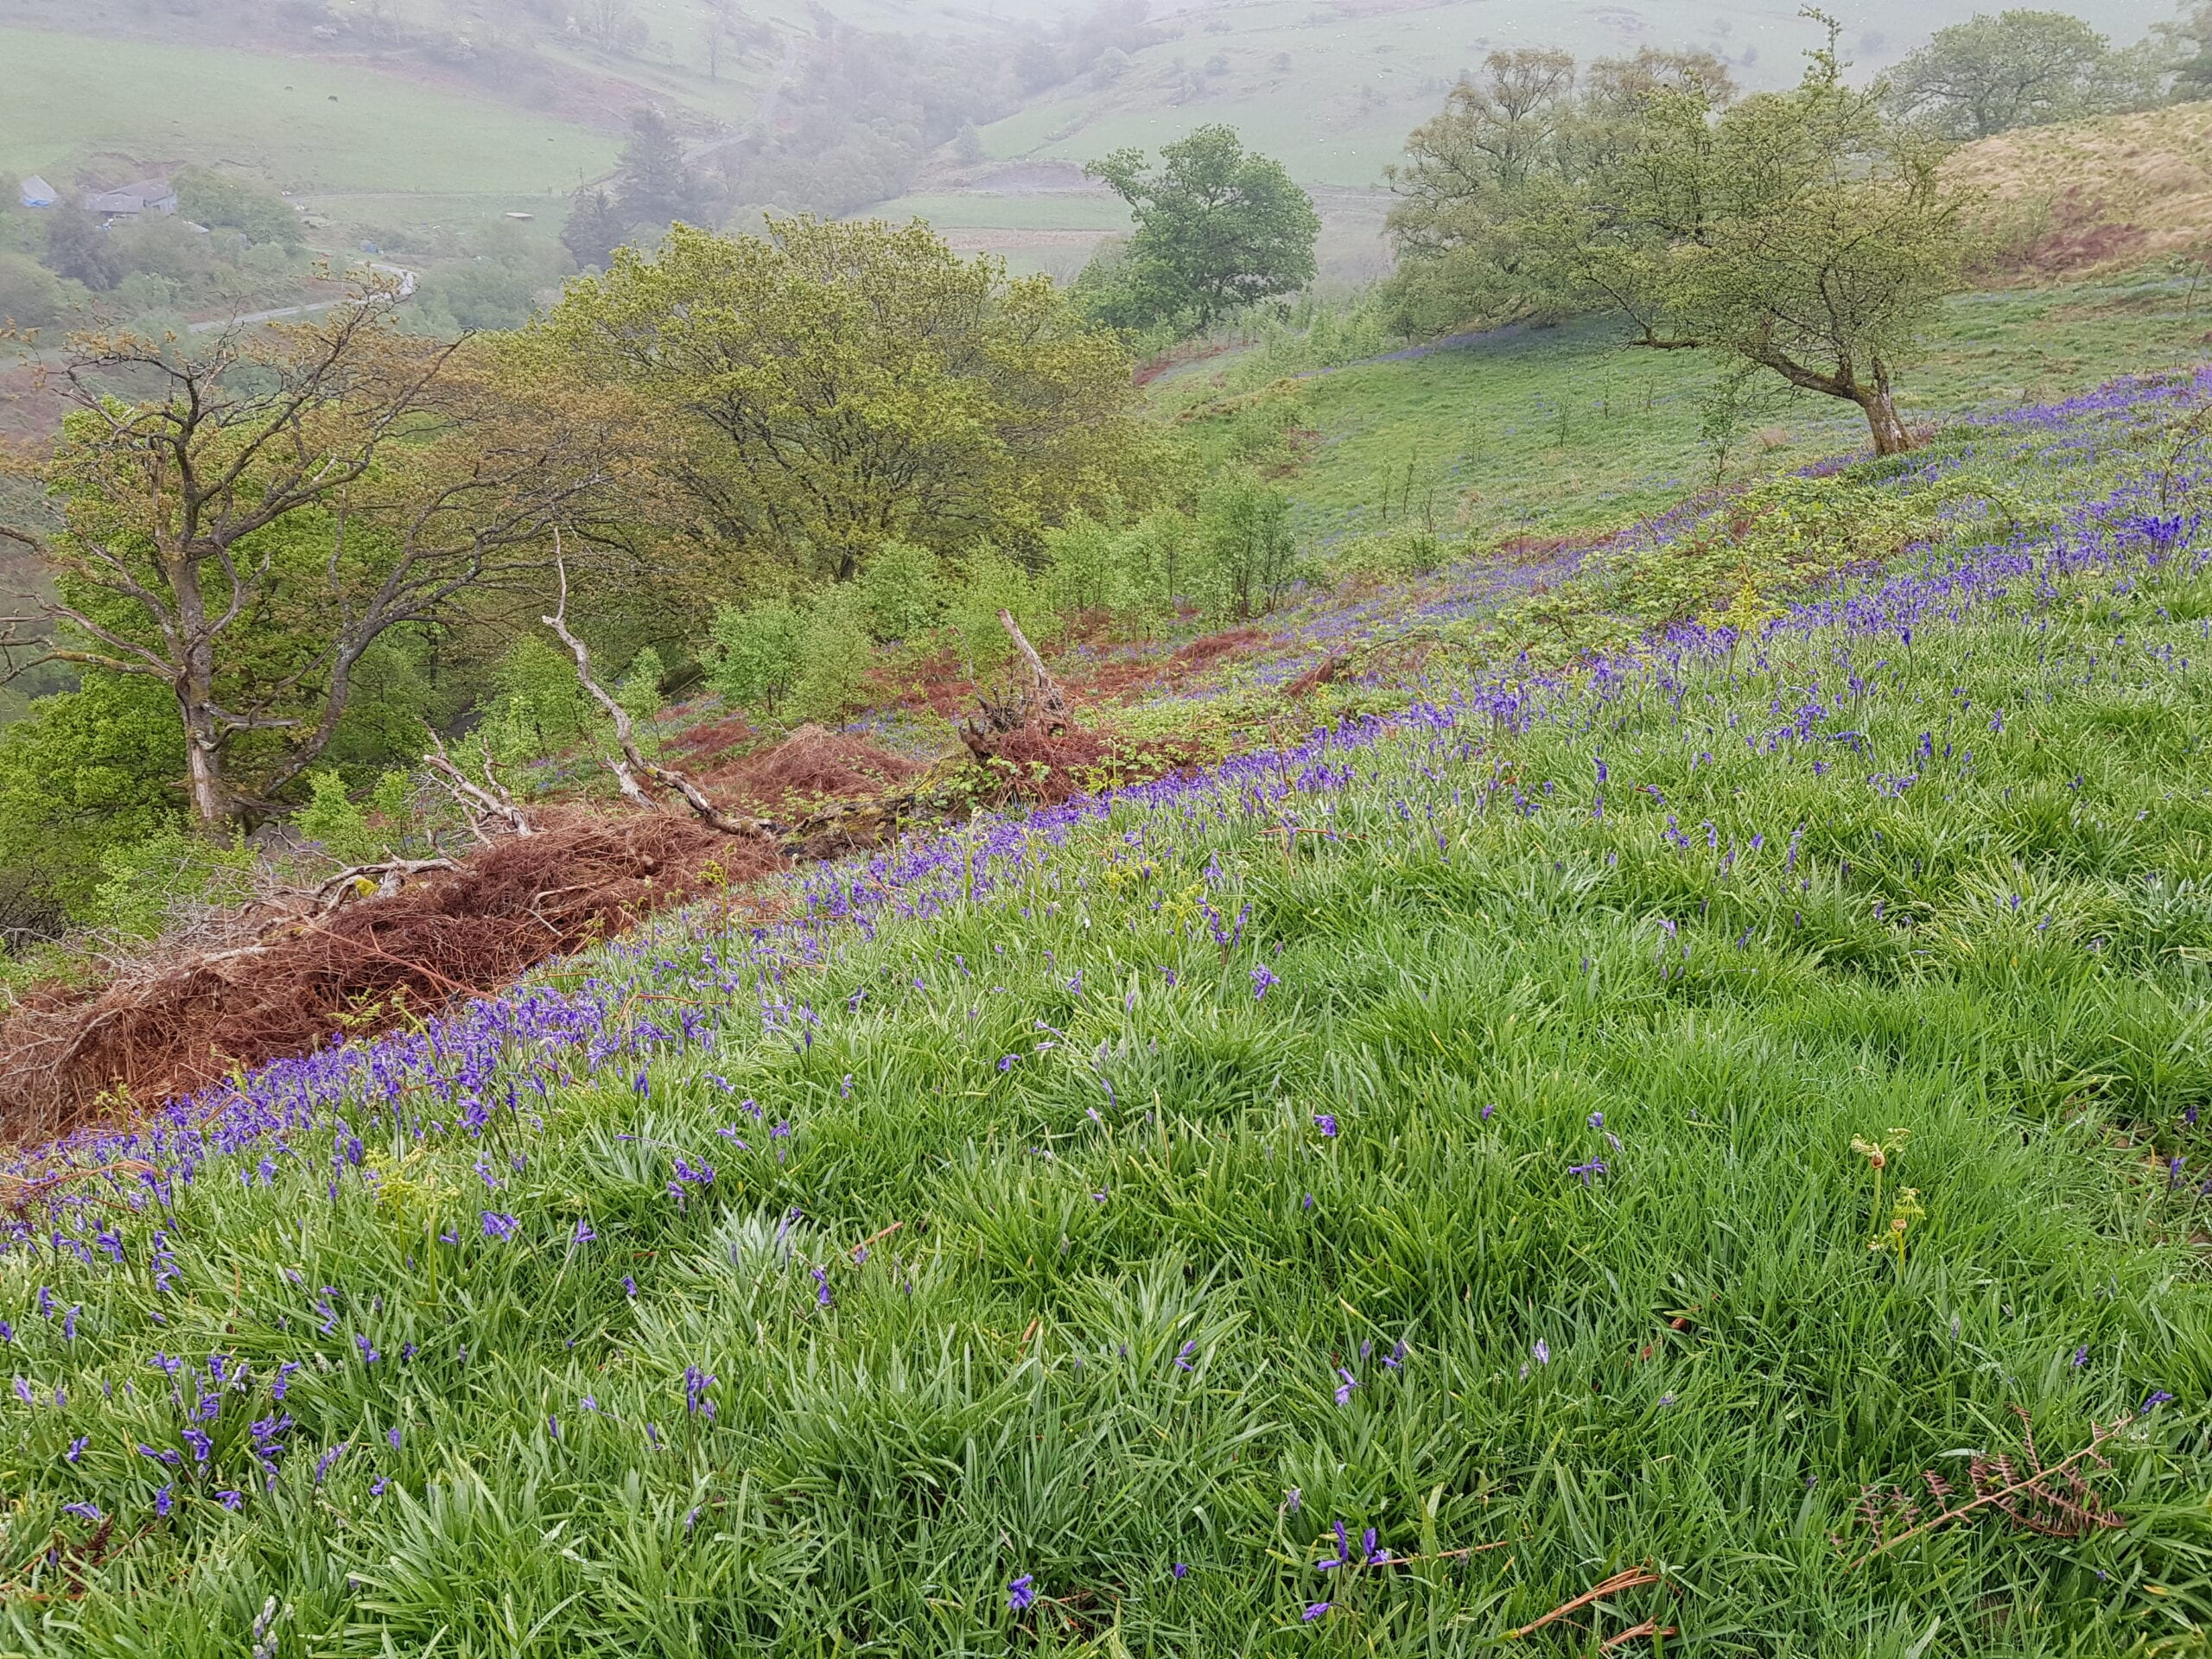 Open land with bluebells